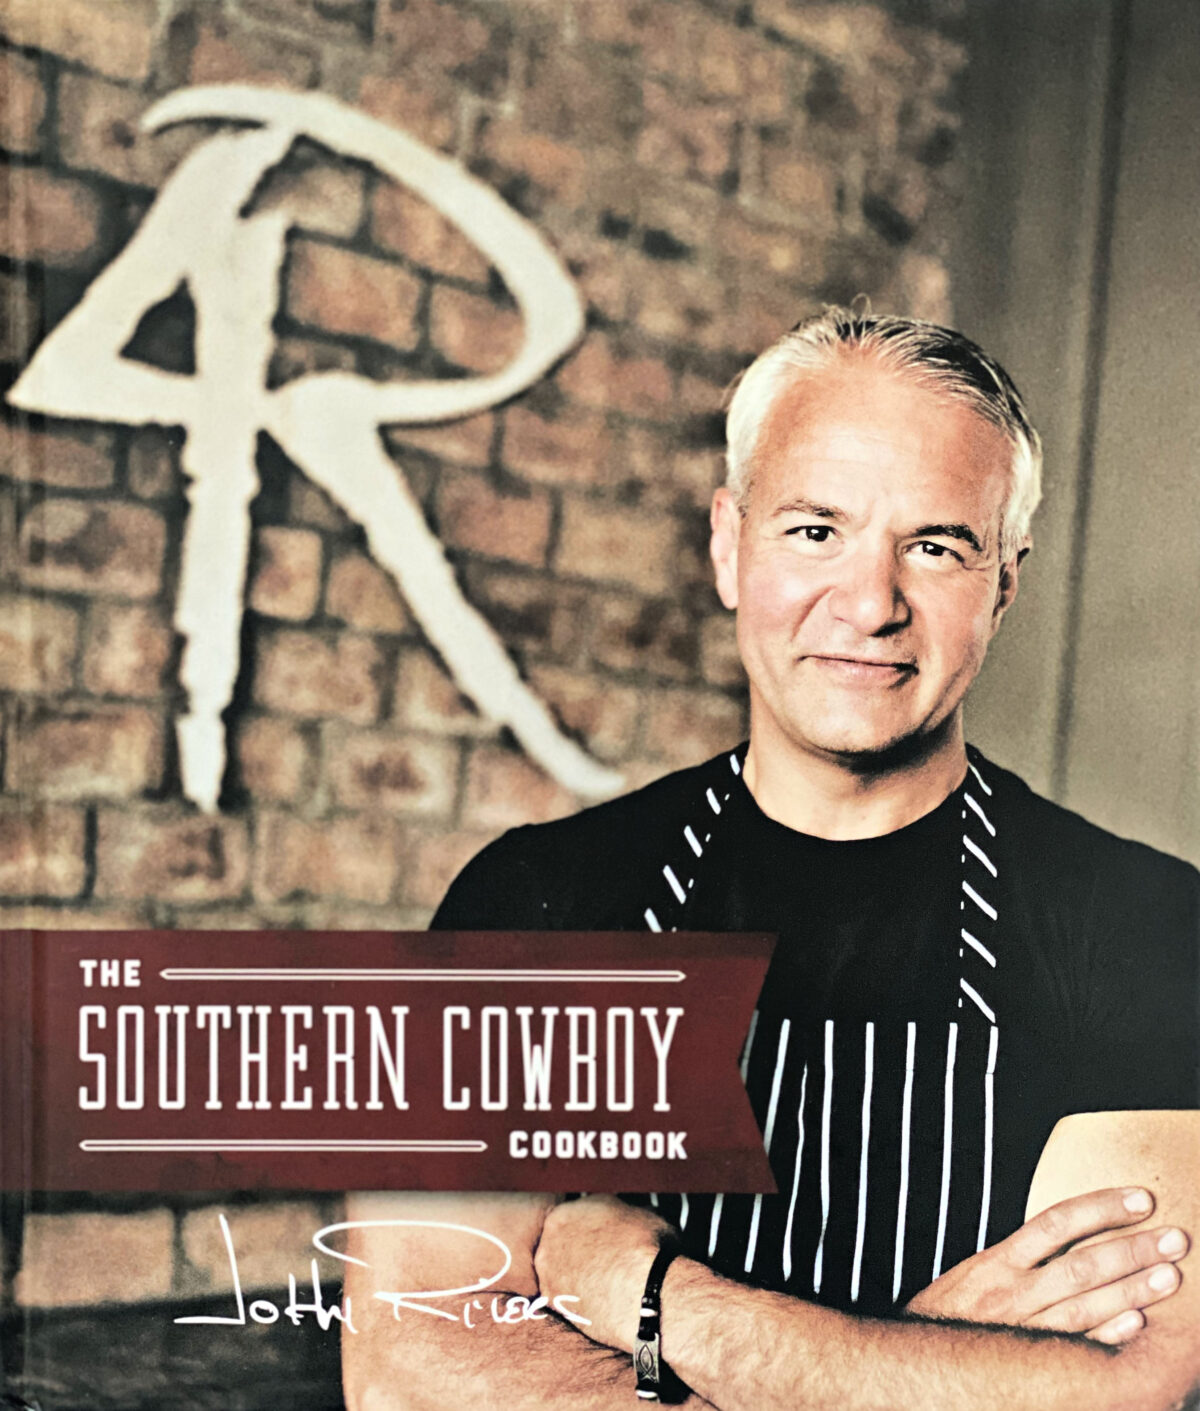 The Southern Cowboy Cookbook by John Rivers.